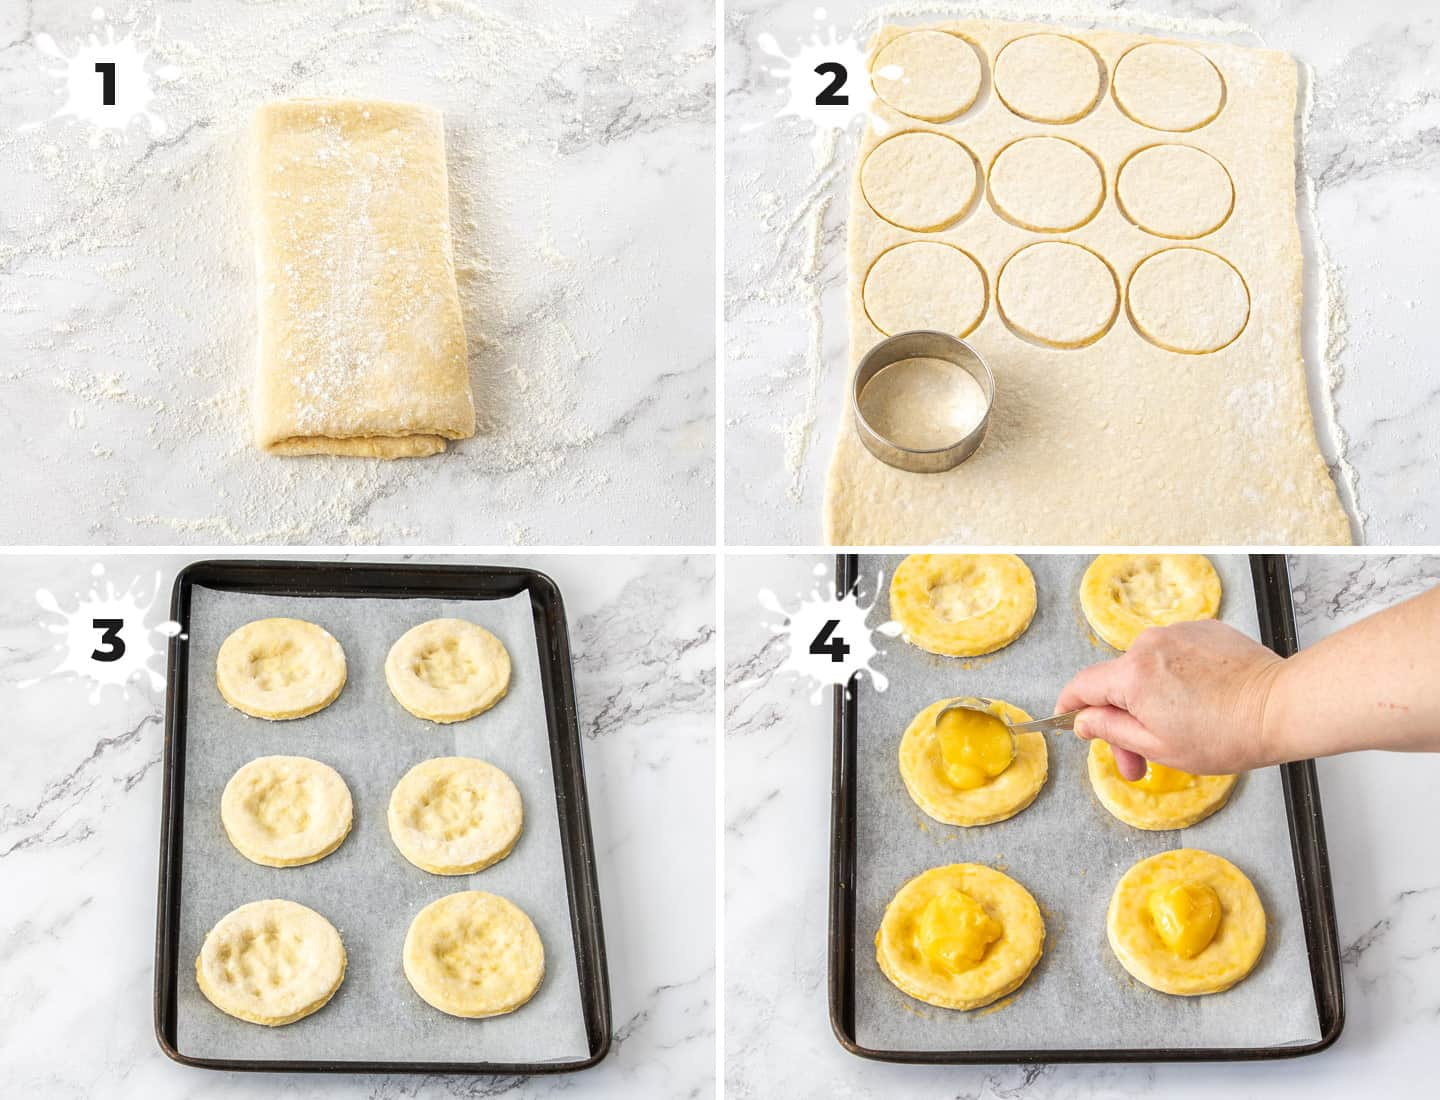 A collage of 4 images showing how to assemble the lemon pastries.